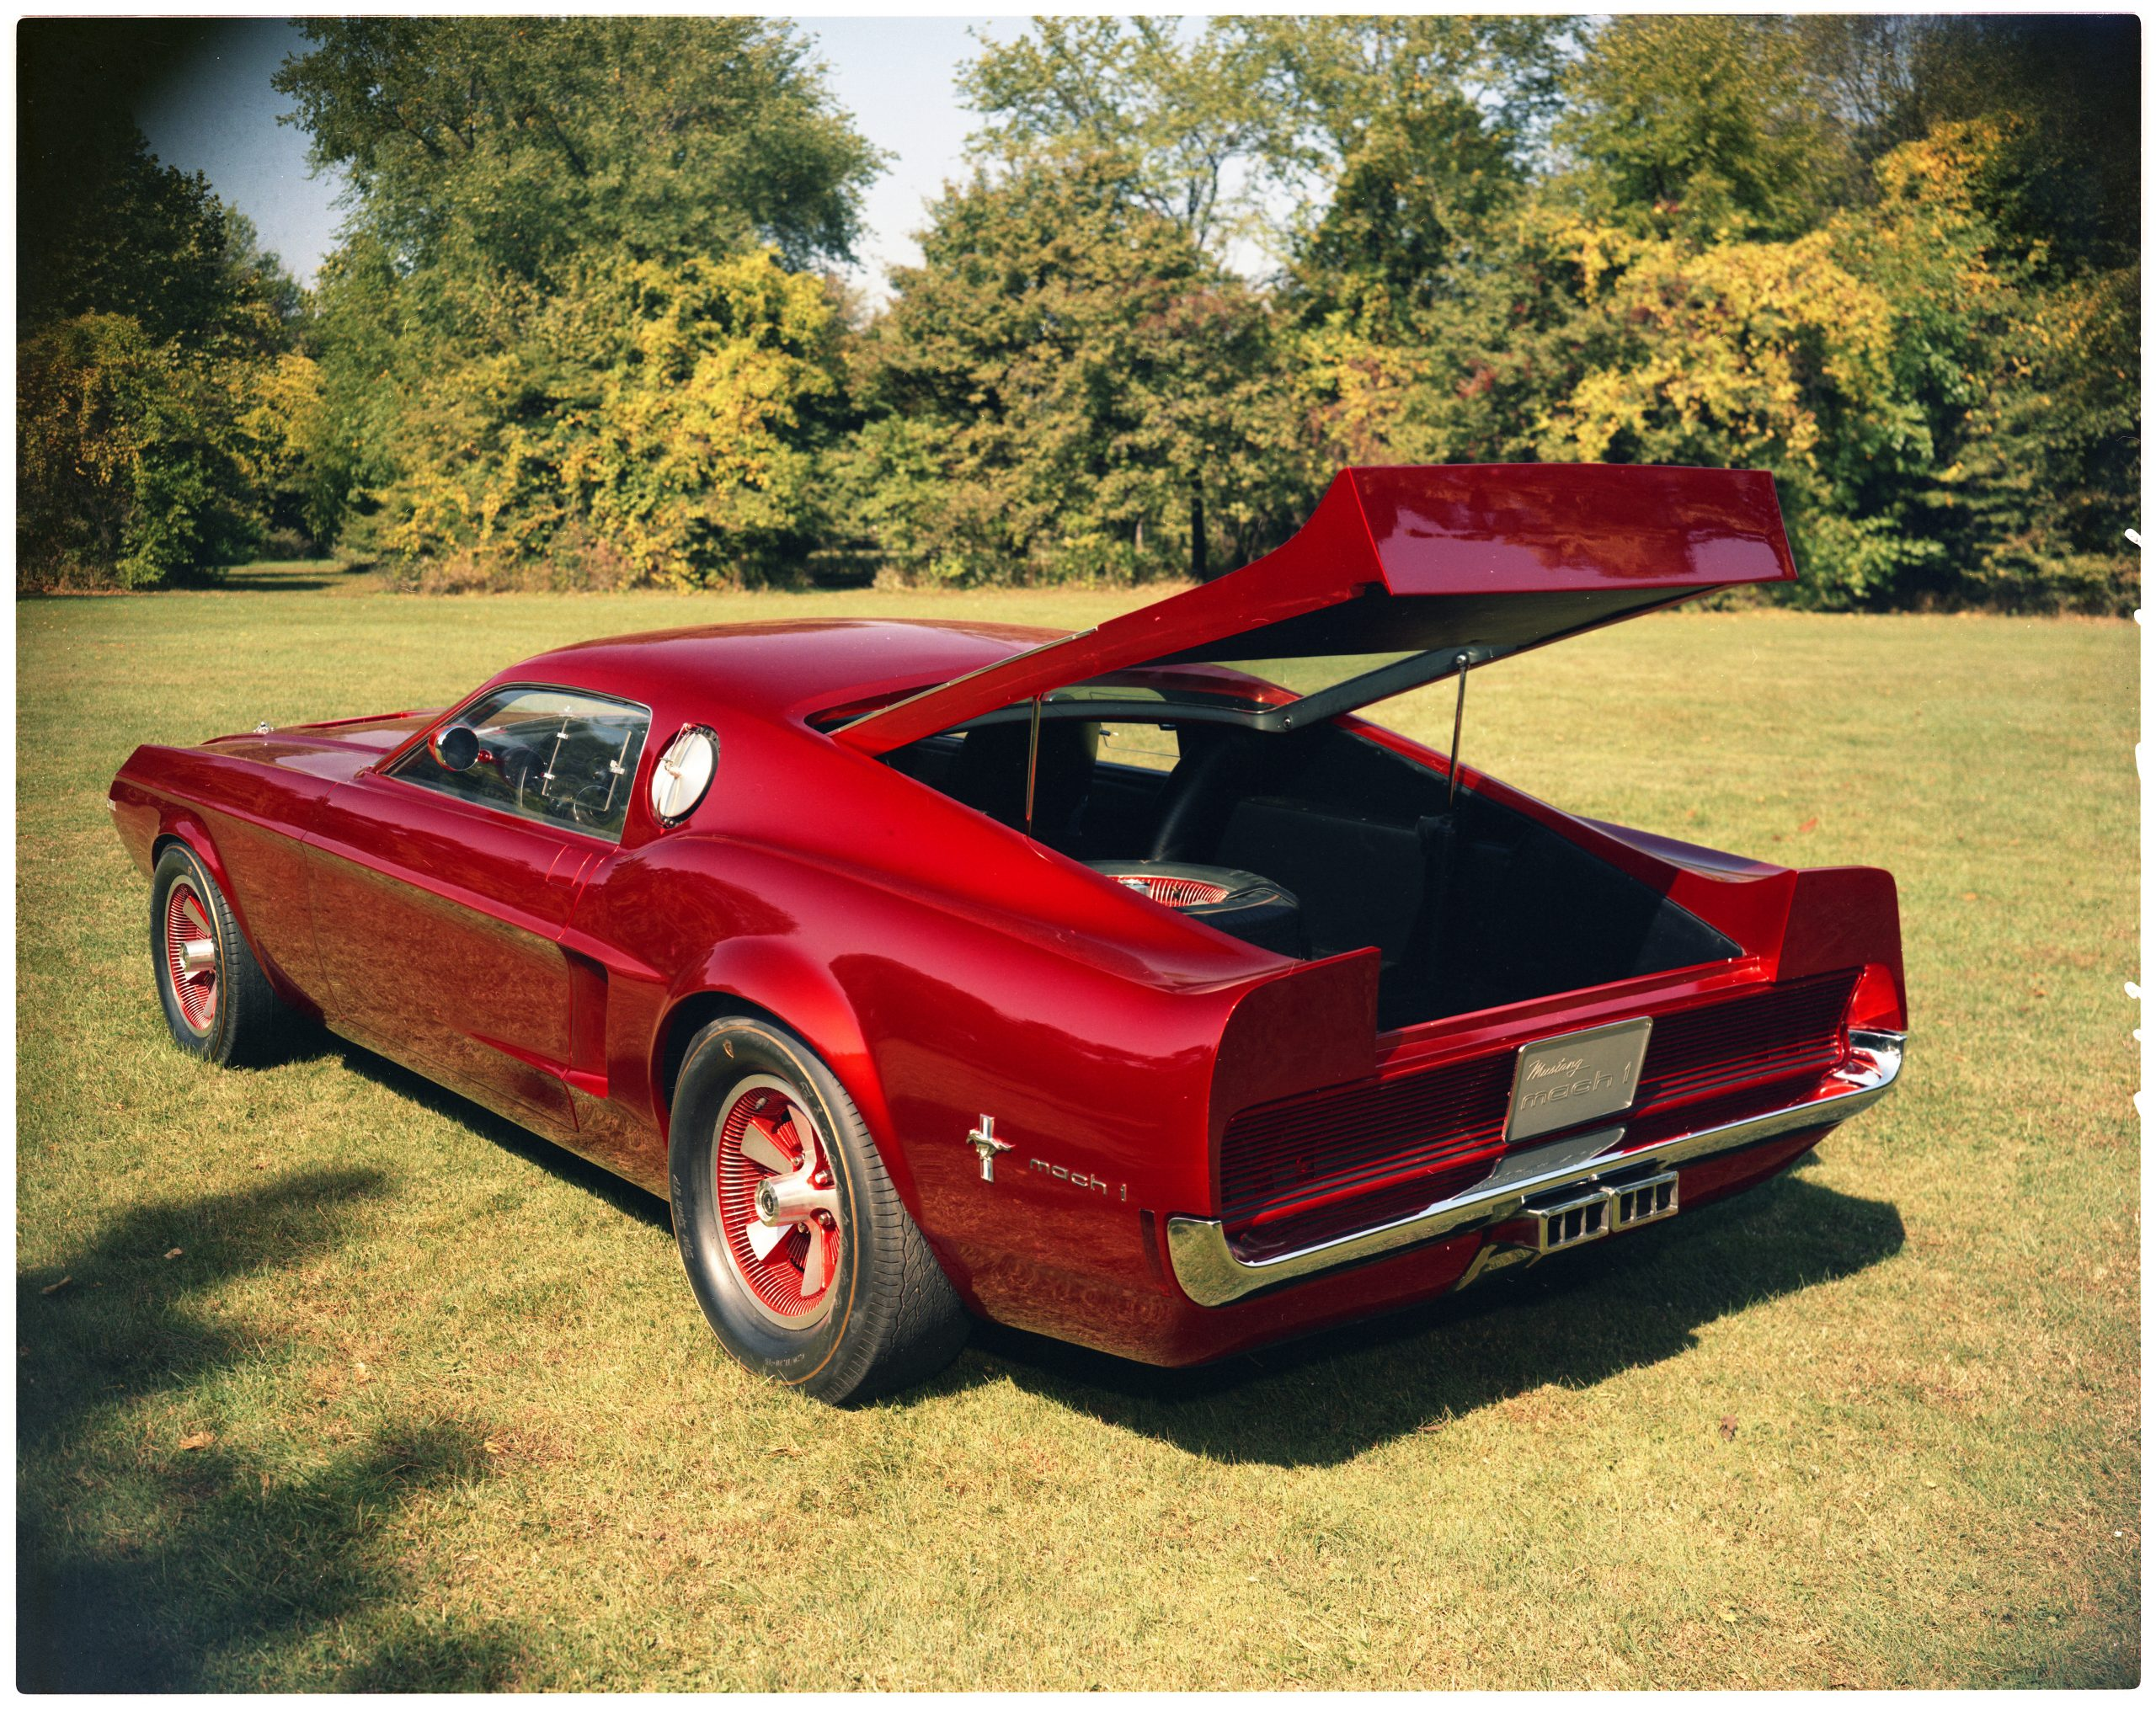 1968 Ford Mustang Mach I Concept Car Rear Three-Quarter